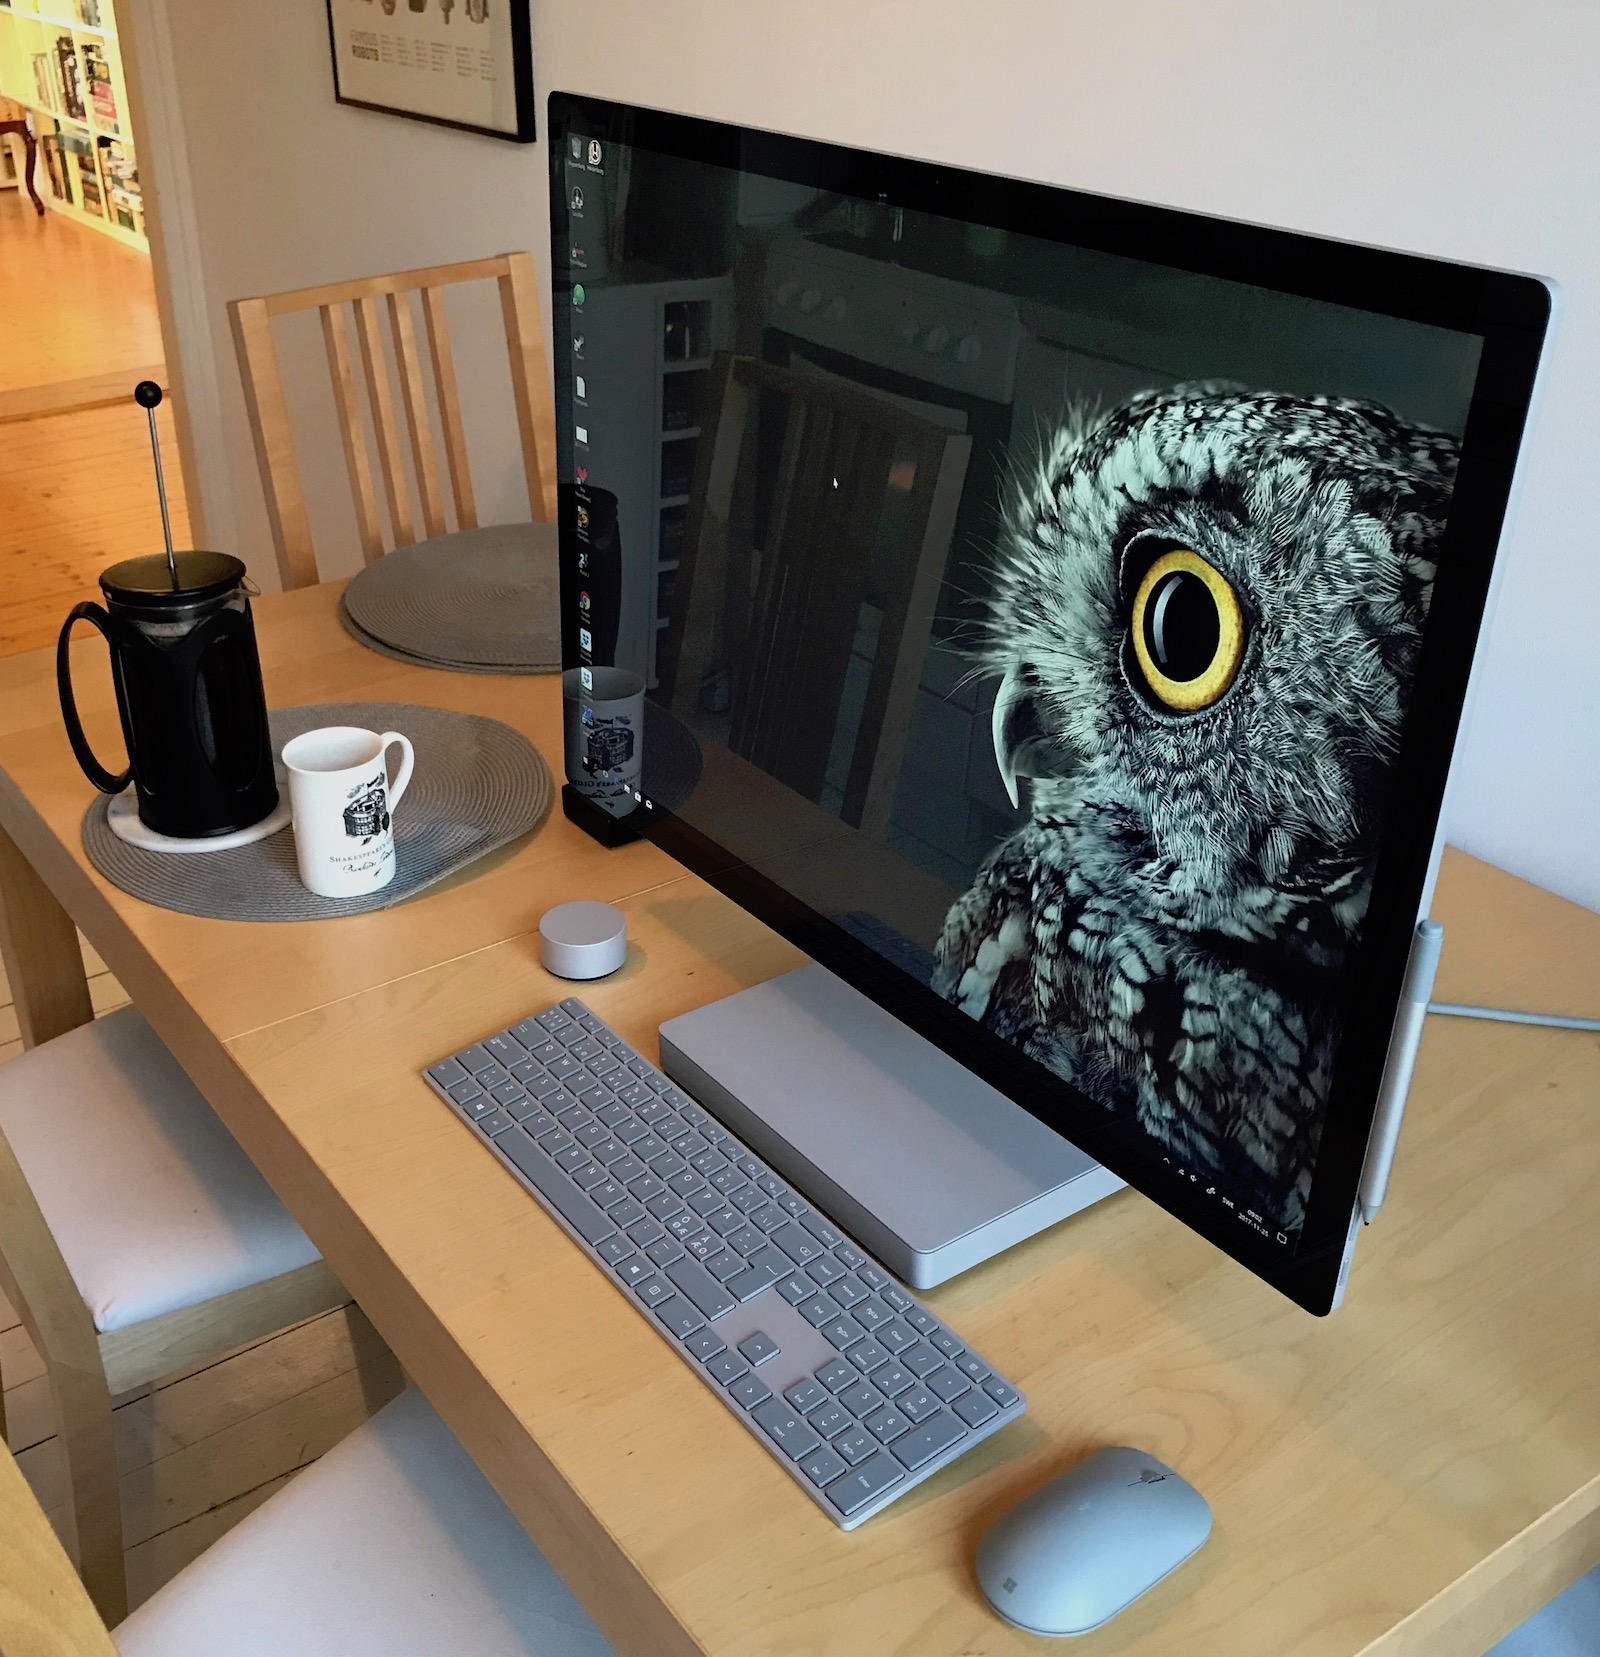 The Surface studio